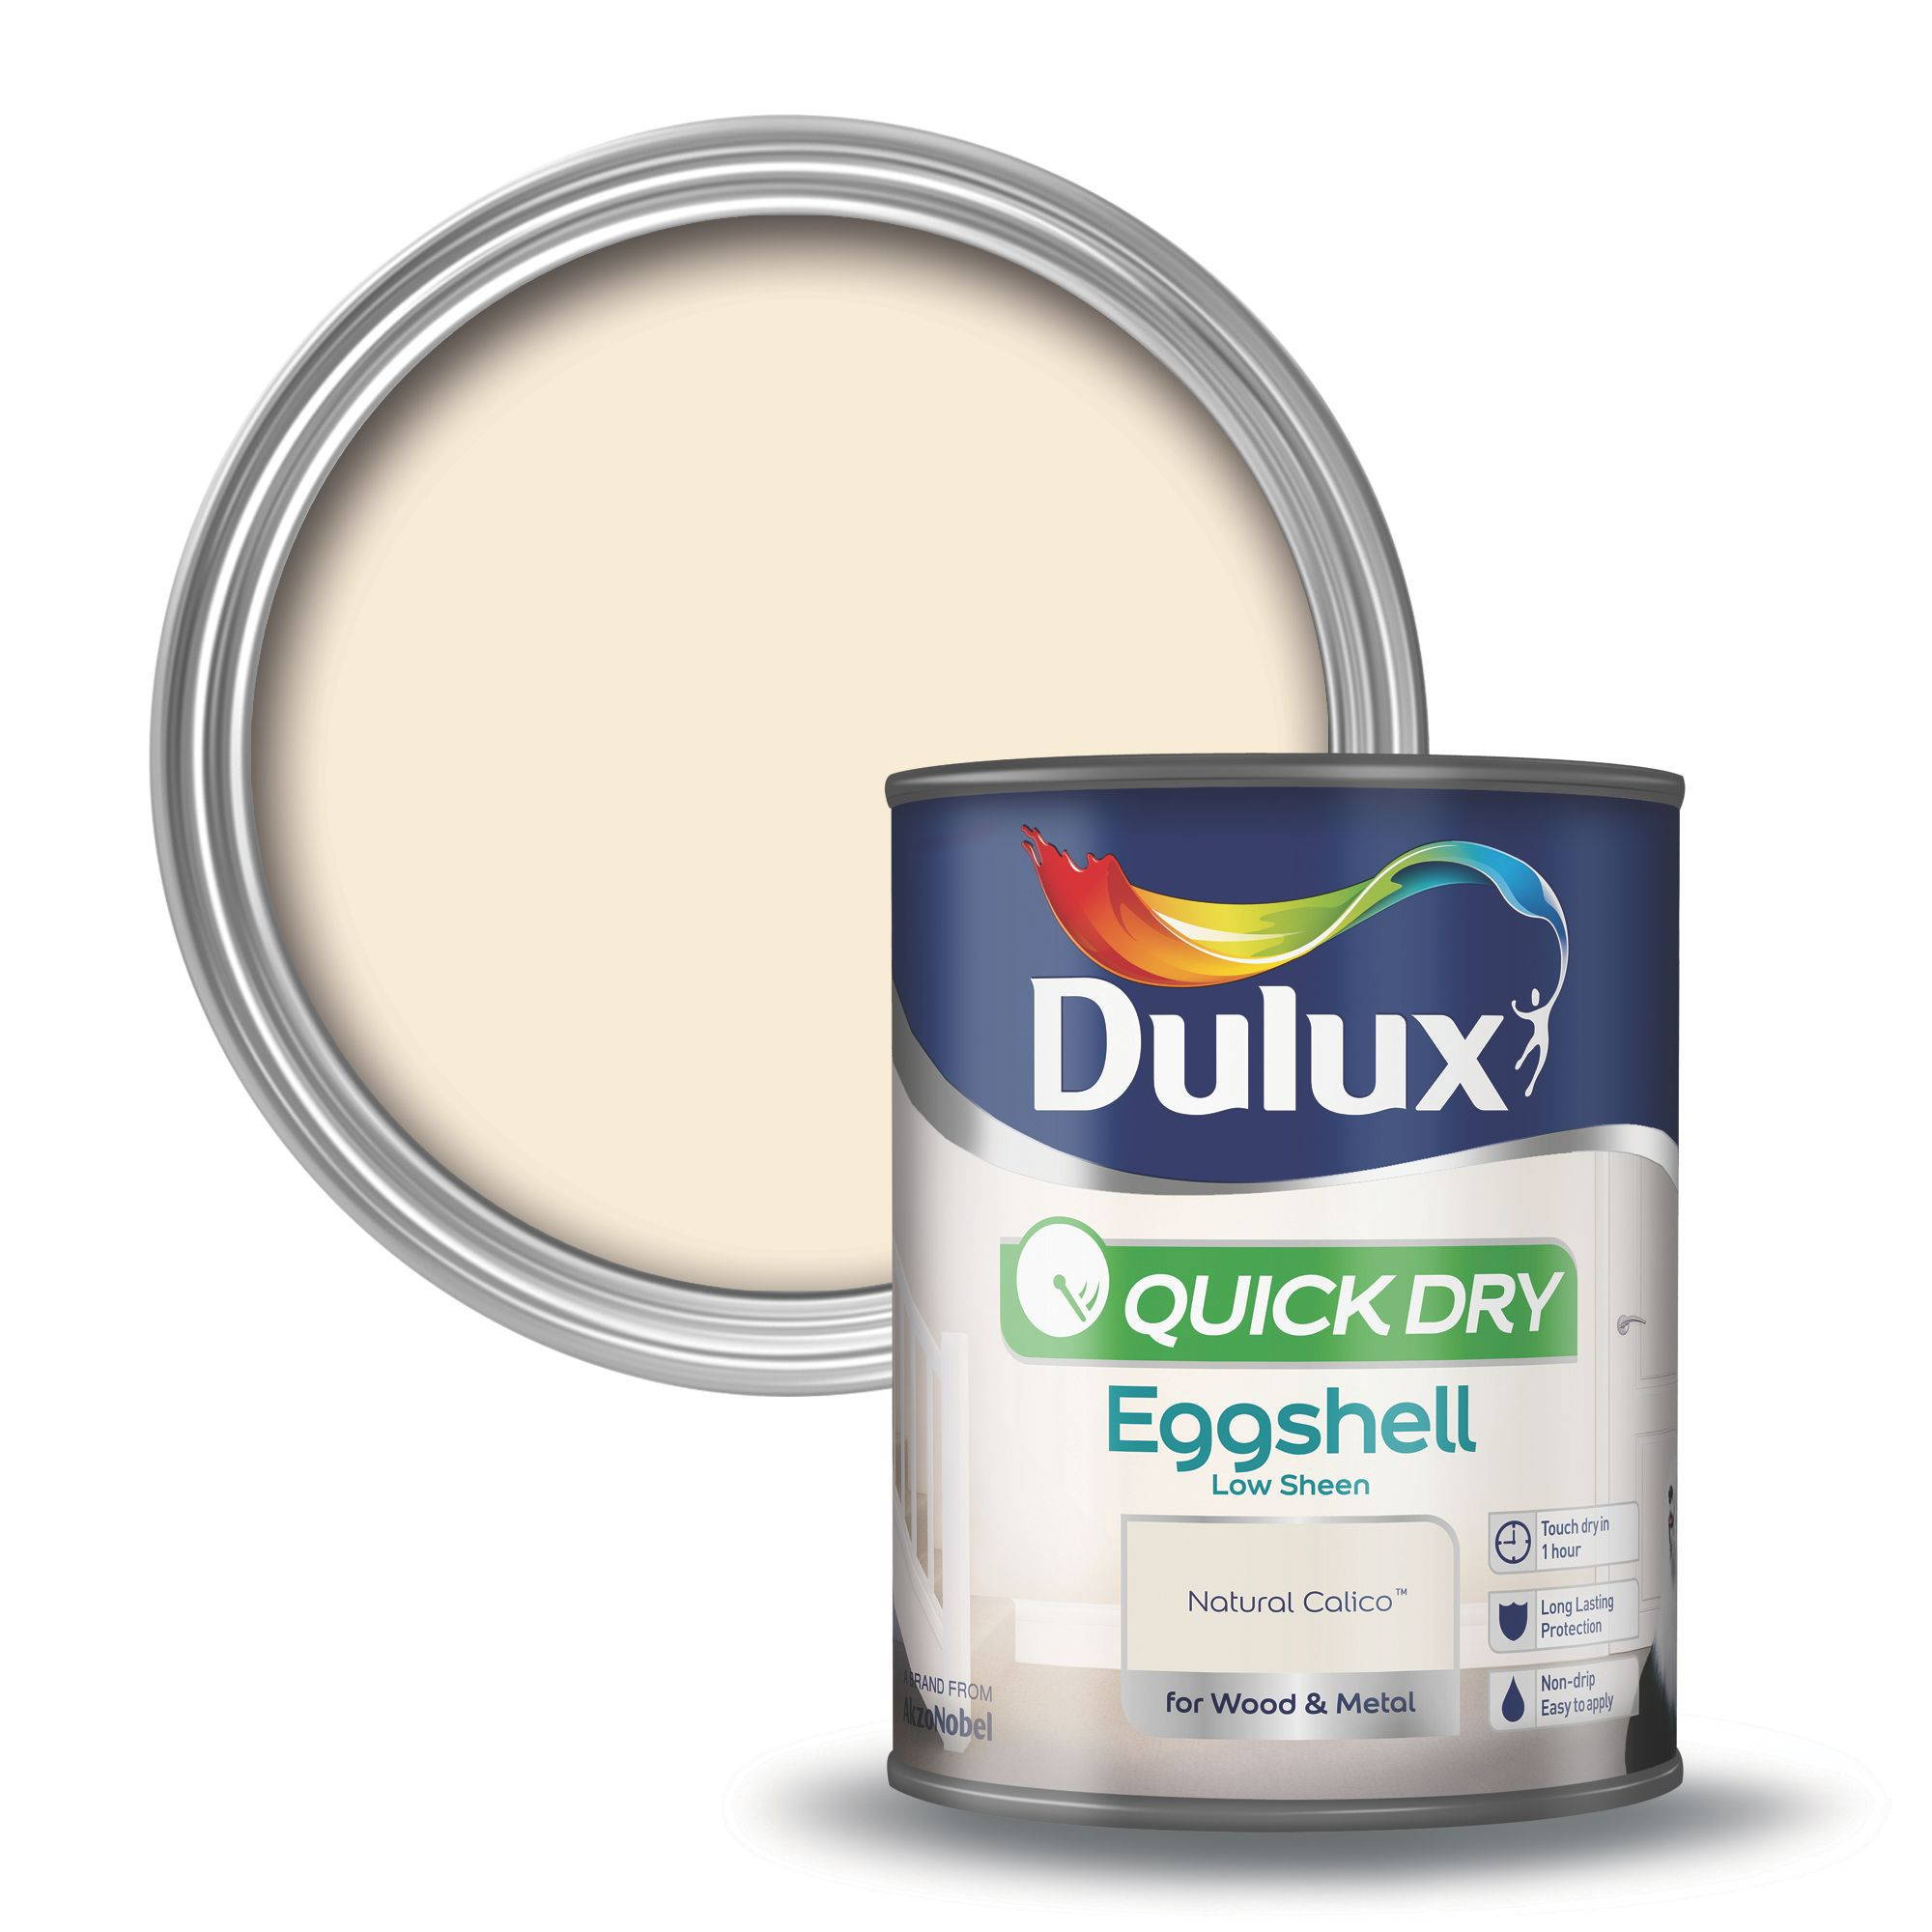 Dulux interior natural calico eggshell wood metal paint - Eggshell paint in bathroom ...